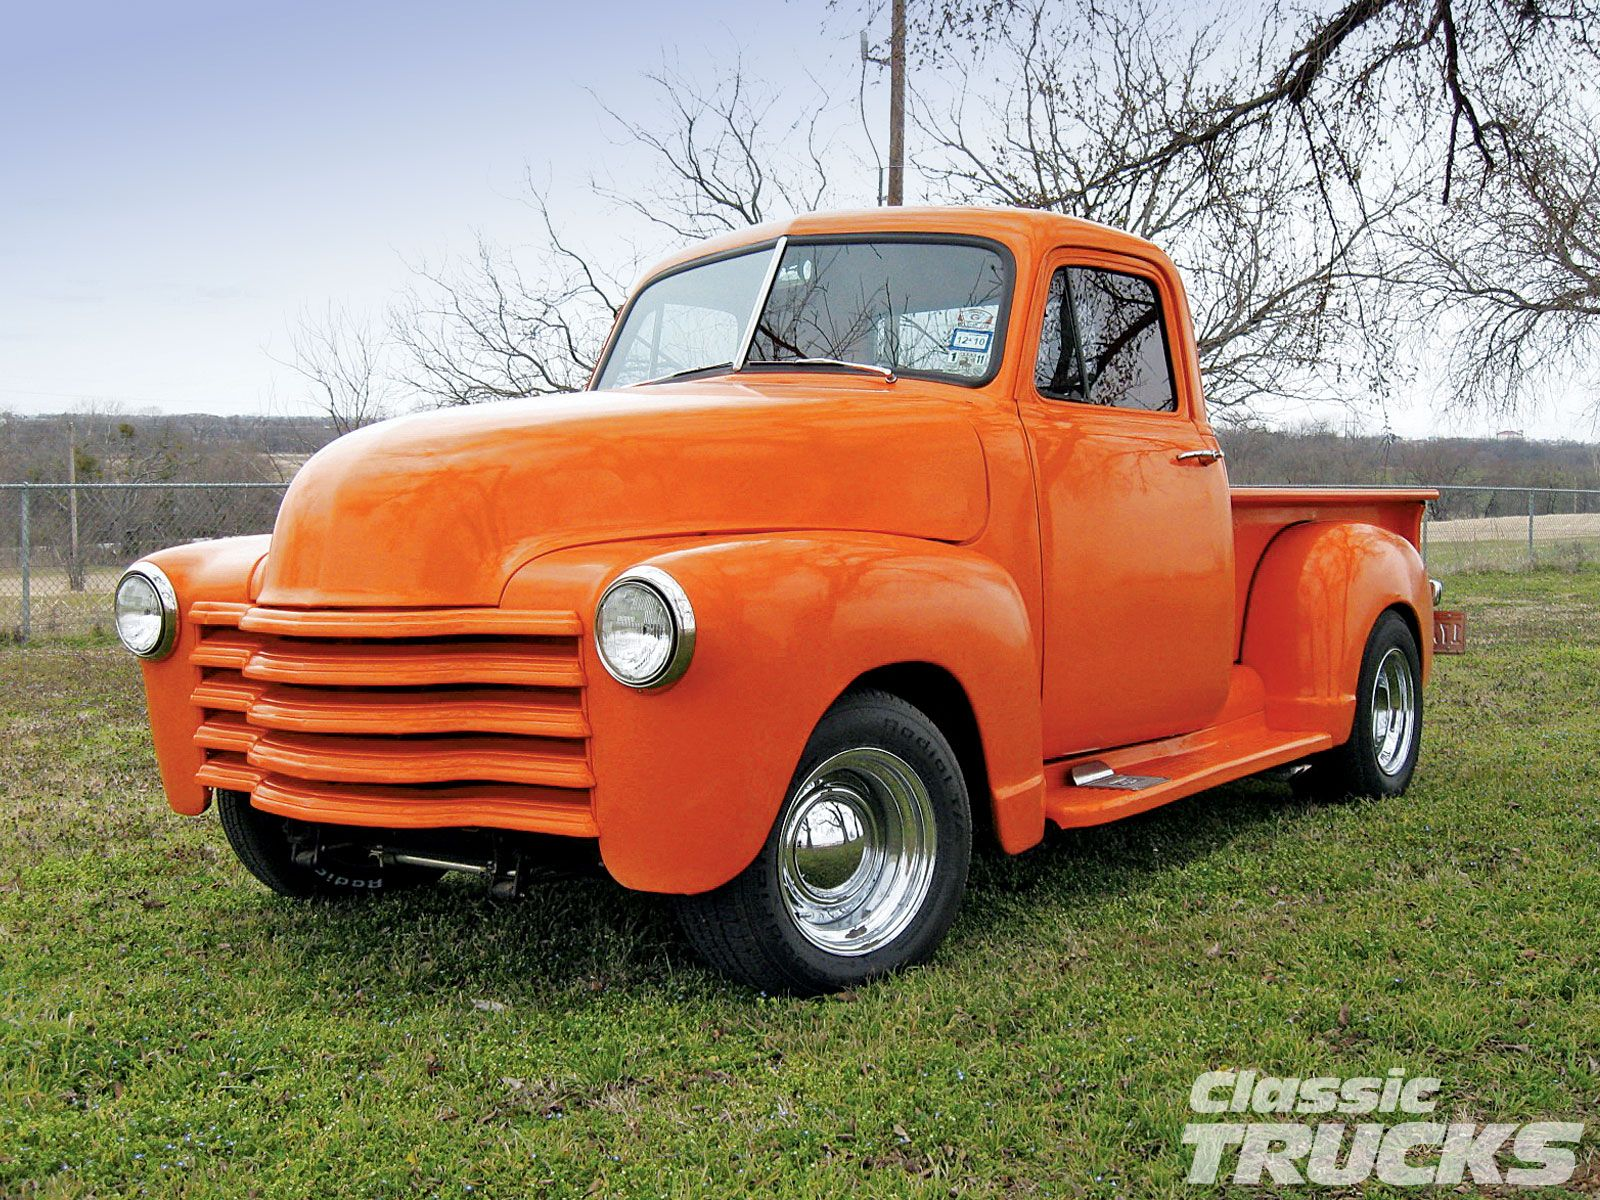 Chevrolet Truck p.s. so getting me a old chevy pick-up truck but ...